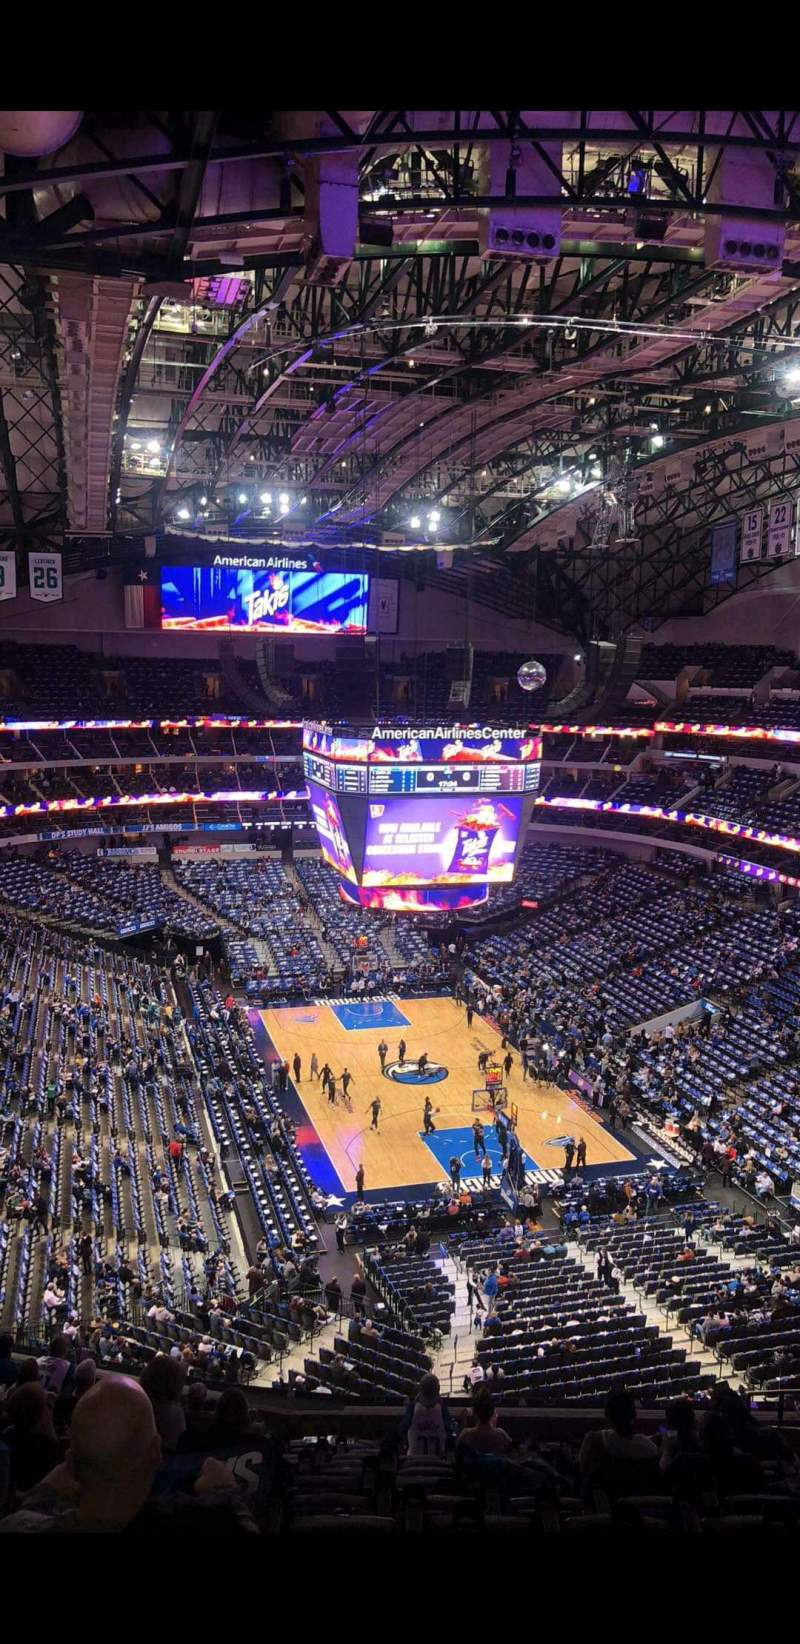 Seating view for American Airlines Center Section 303 Row J Seat 5